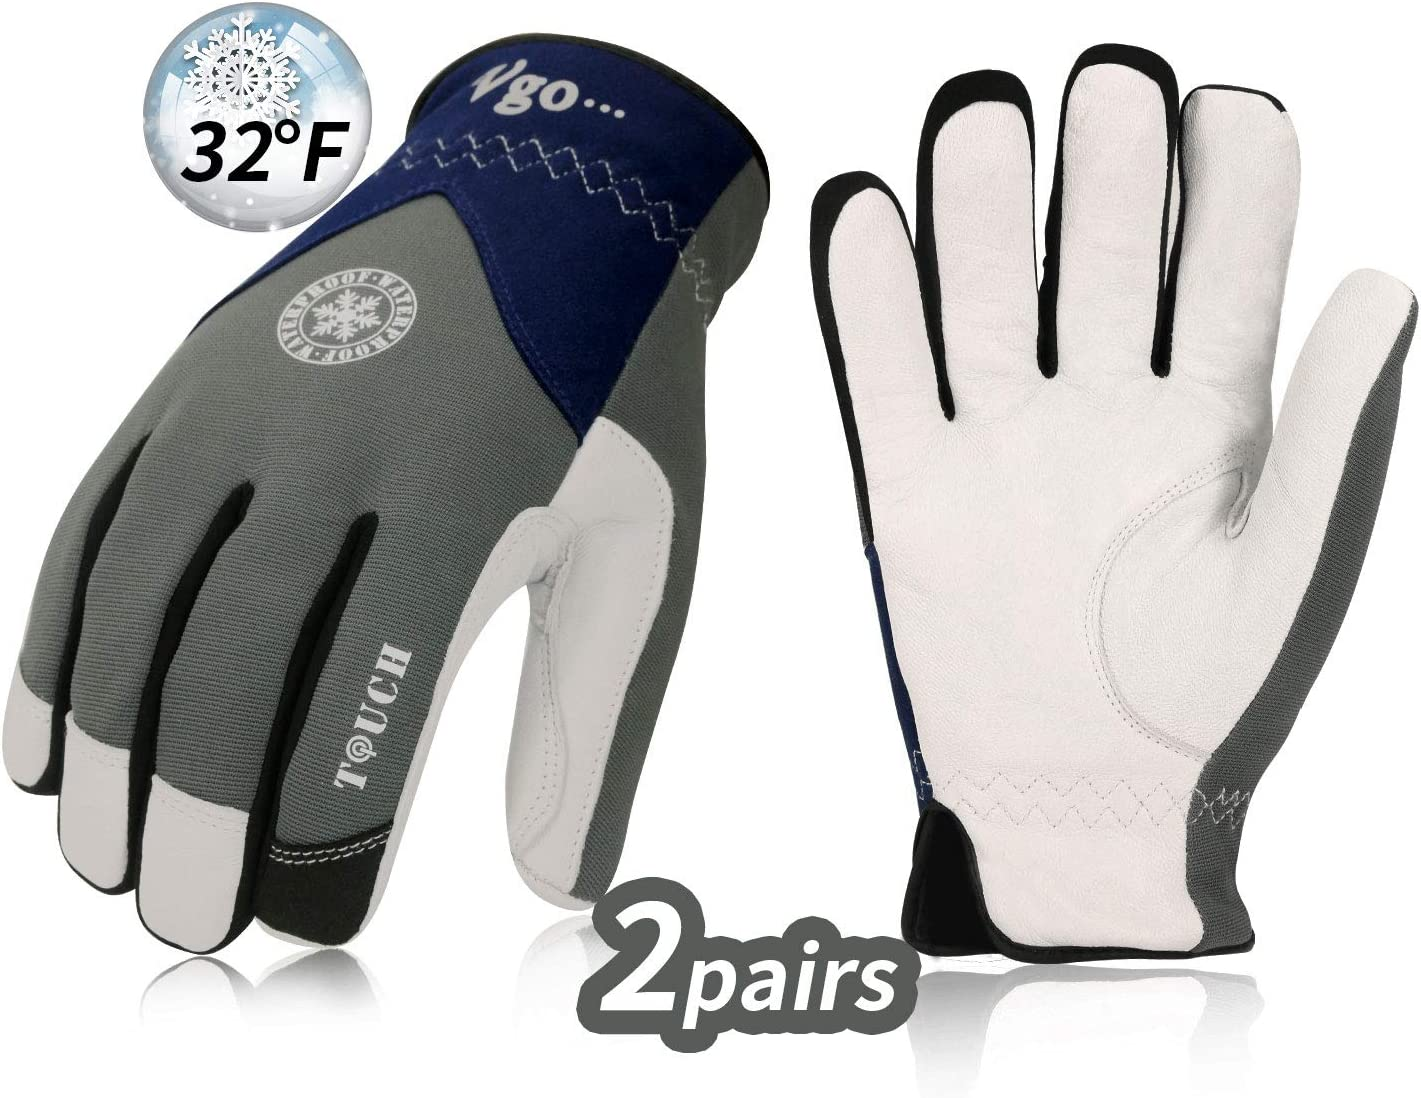 Vgo Water Repellent Goat Leather Light Duty Mechanic Glove,Rigger Glove 1 Pair,Anti-abrasion,Size L, Brown, GA9603 Laborsing Safety Products Inc.